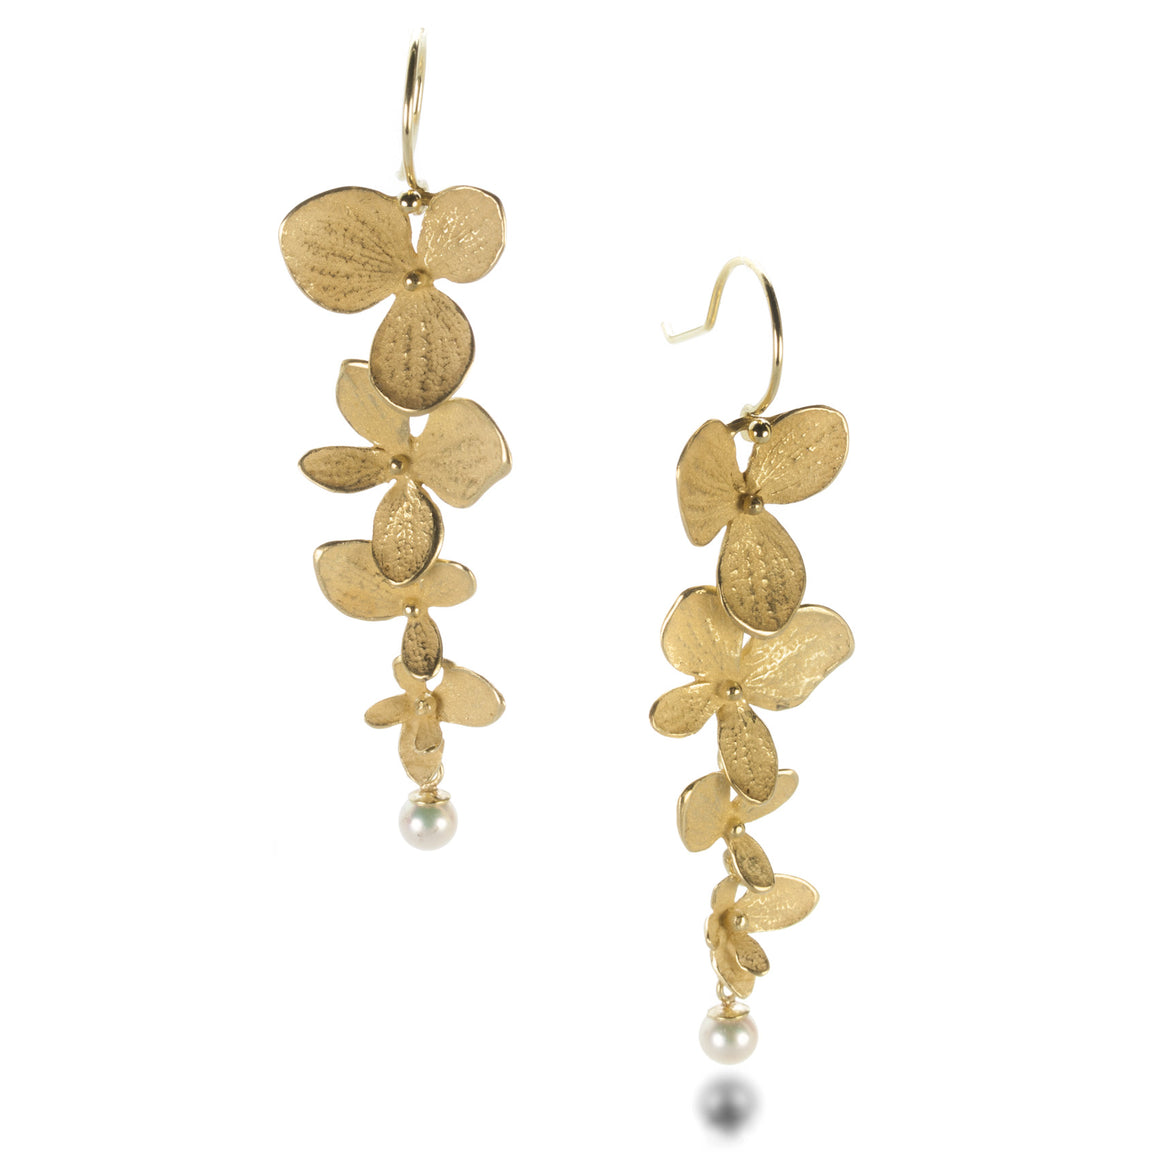 John Iversen Four Part Hydrangea Earrings with Pearls | Quadrum Gallery